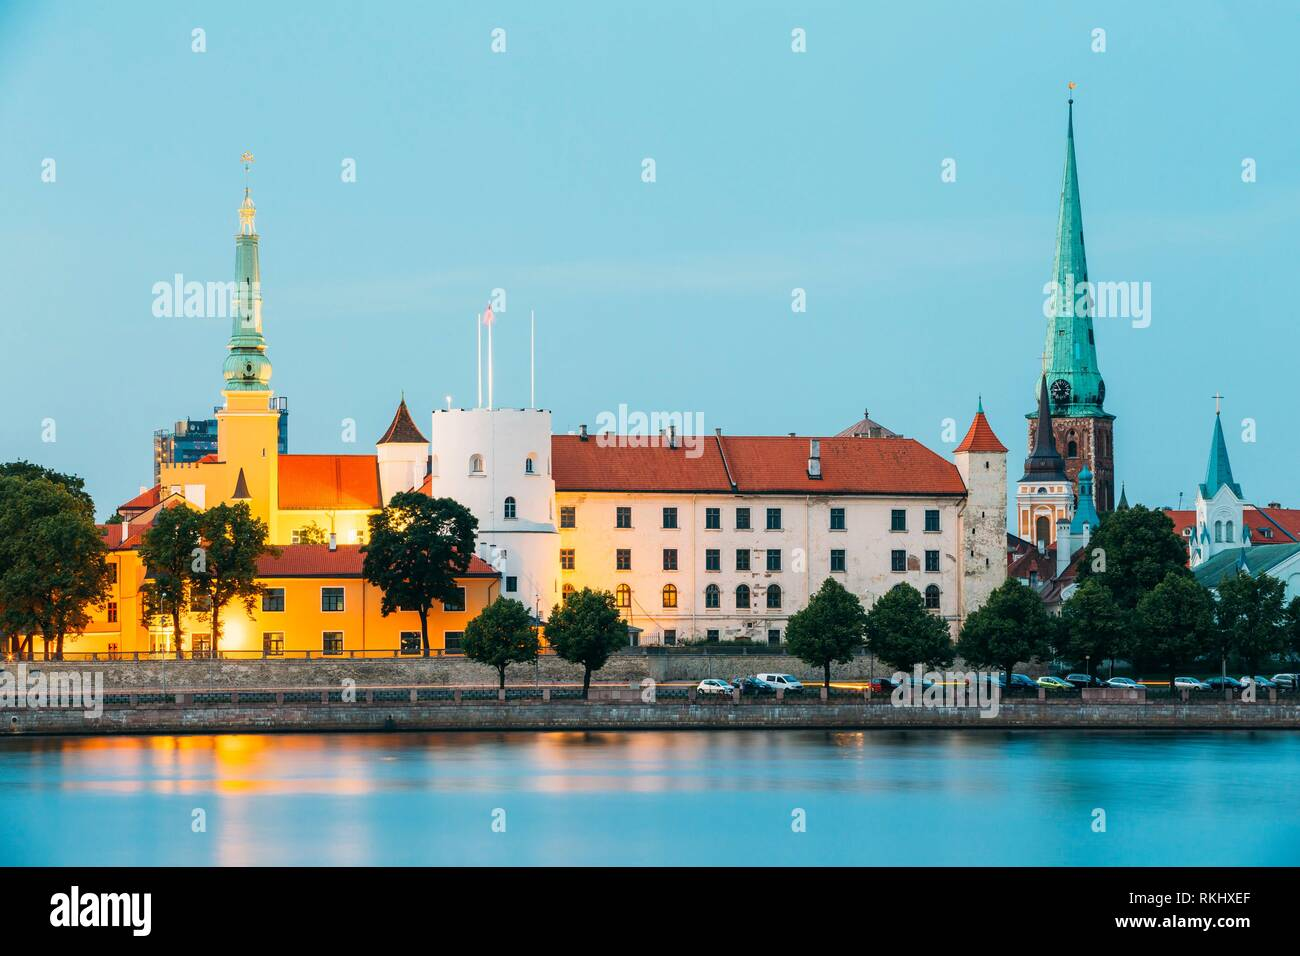 Latvia. Riga Castle, Famous Historical Cultural Medieval Landmark Of Late Classicism And Official President Residence On Embankment Of Daugava River - Stock Image